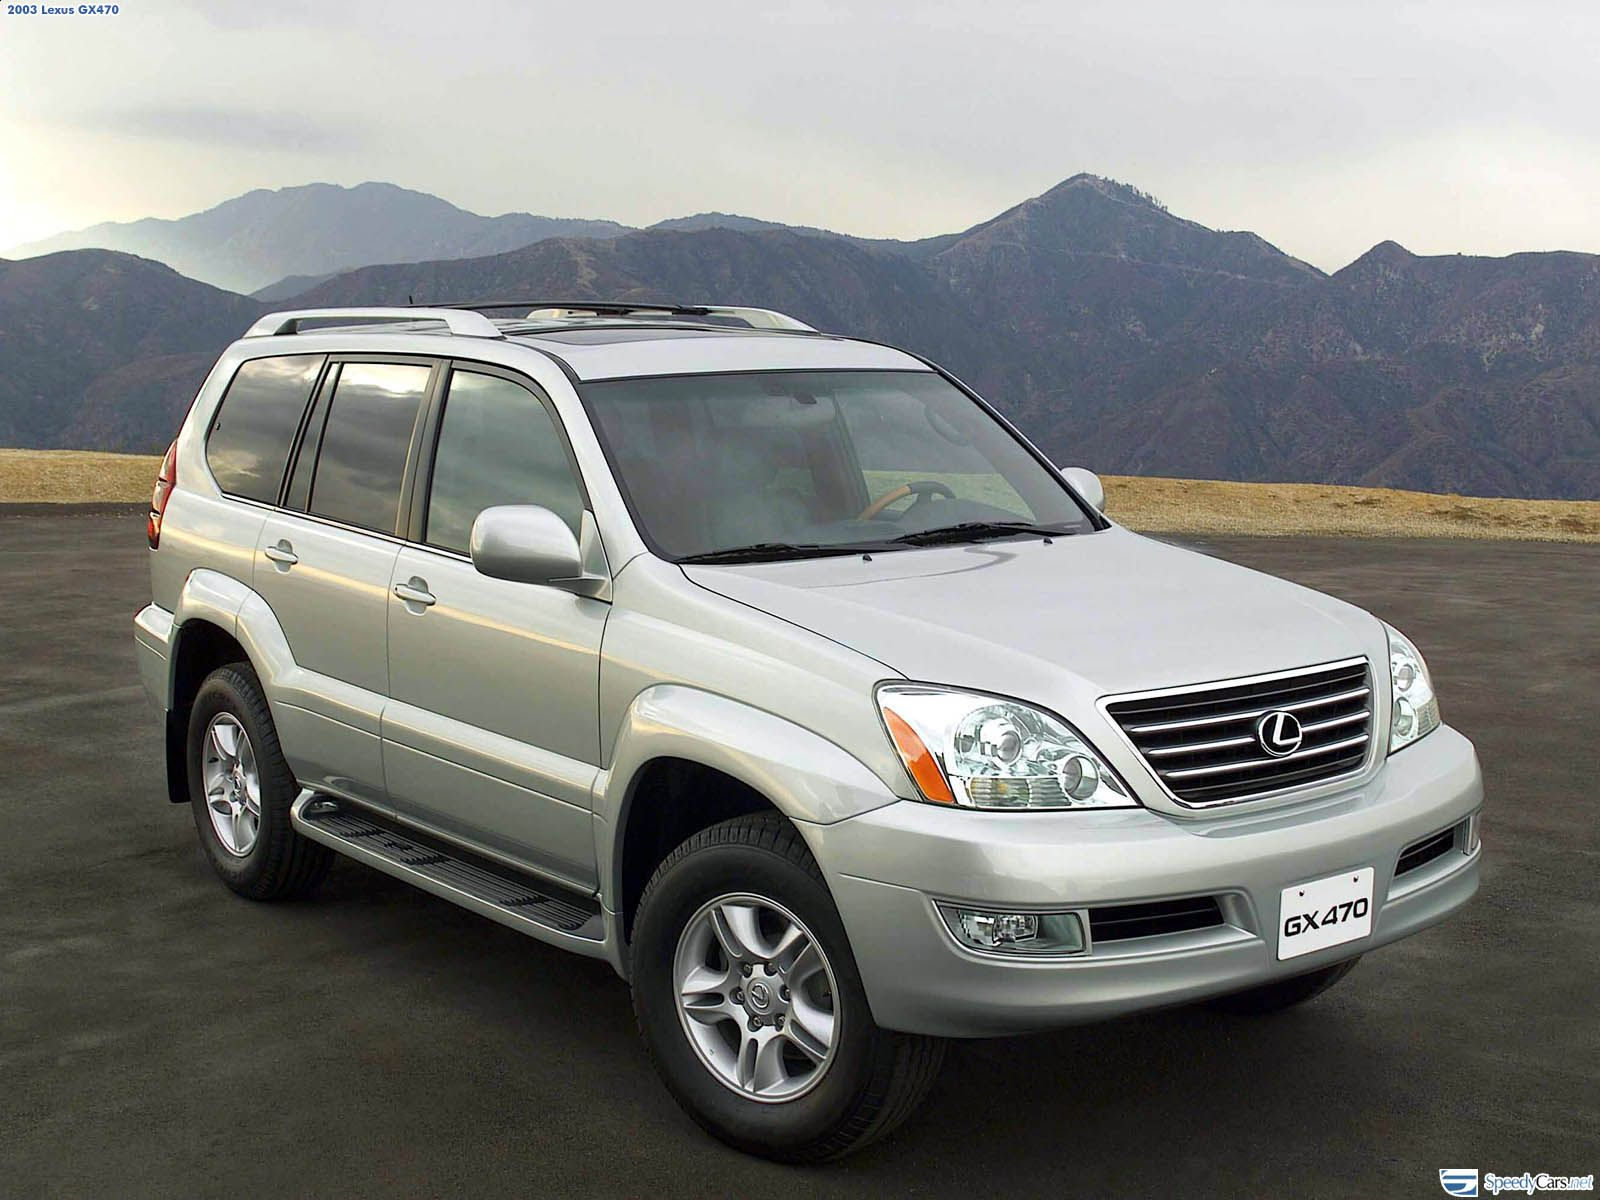 lexus gx 470 photos photogallery with 10 pics. Black Bedroom Furniture Sets. Home Design Ideas